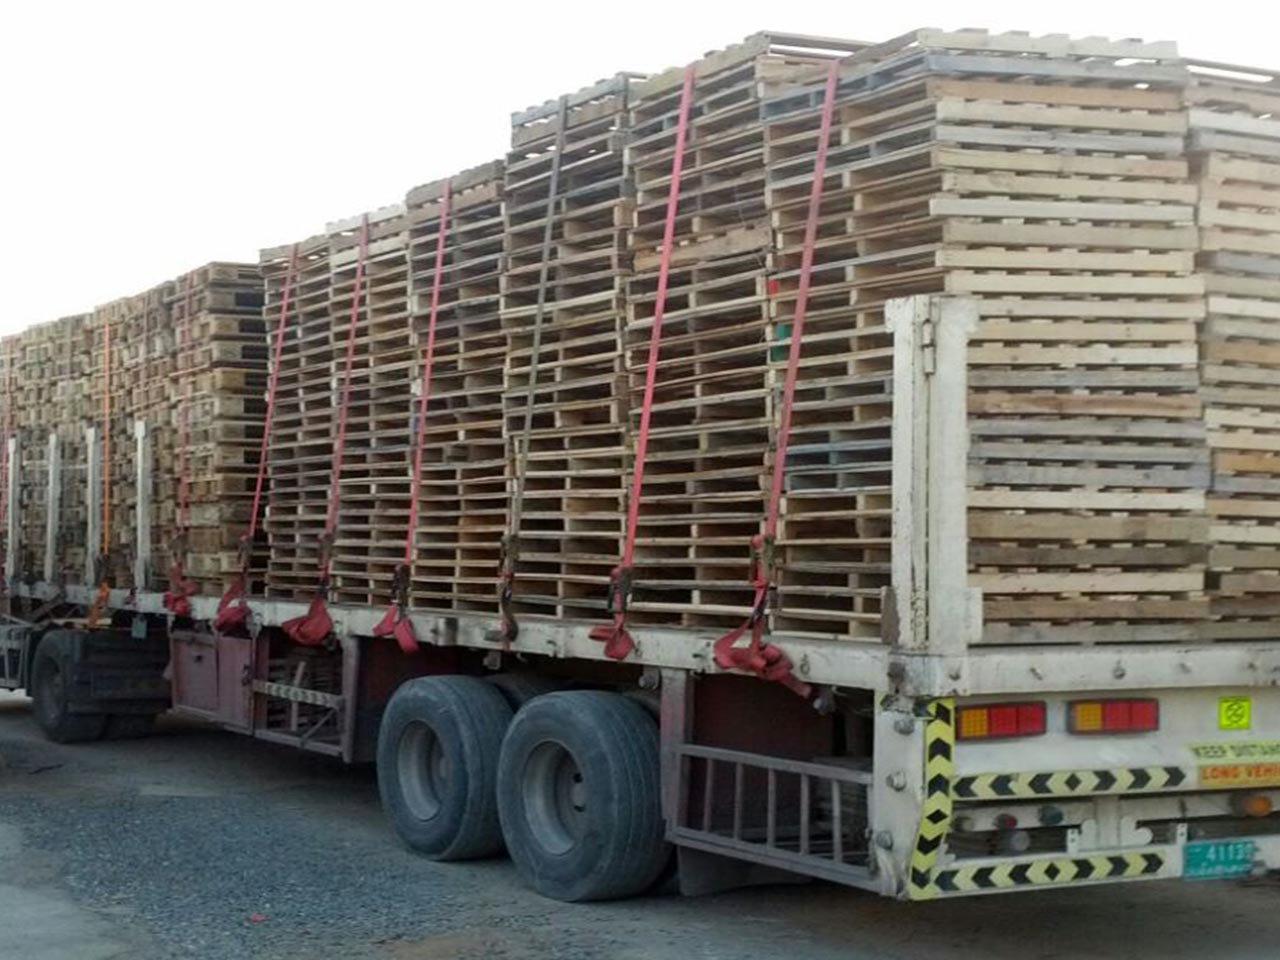 pallets on a truck